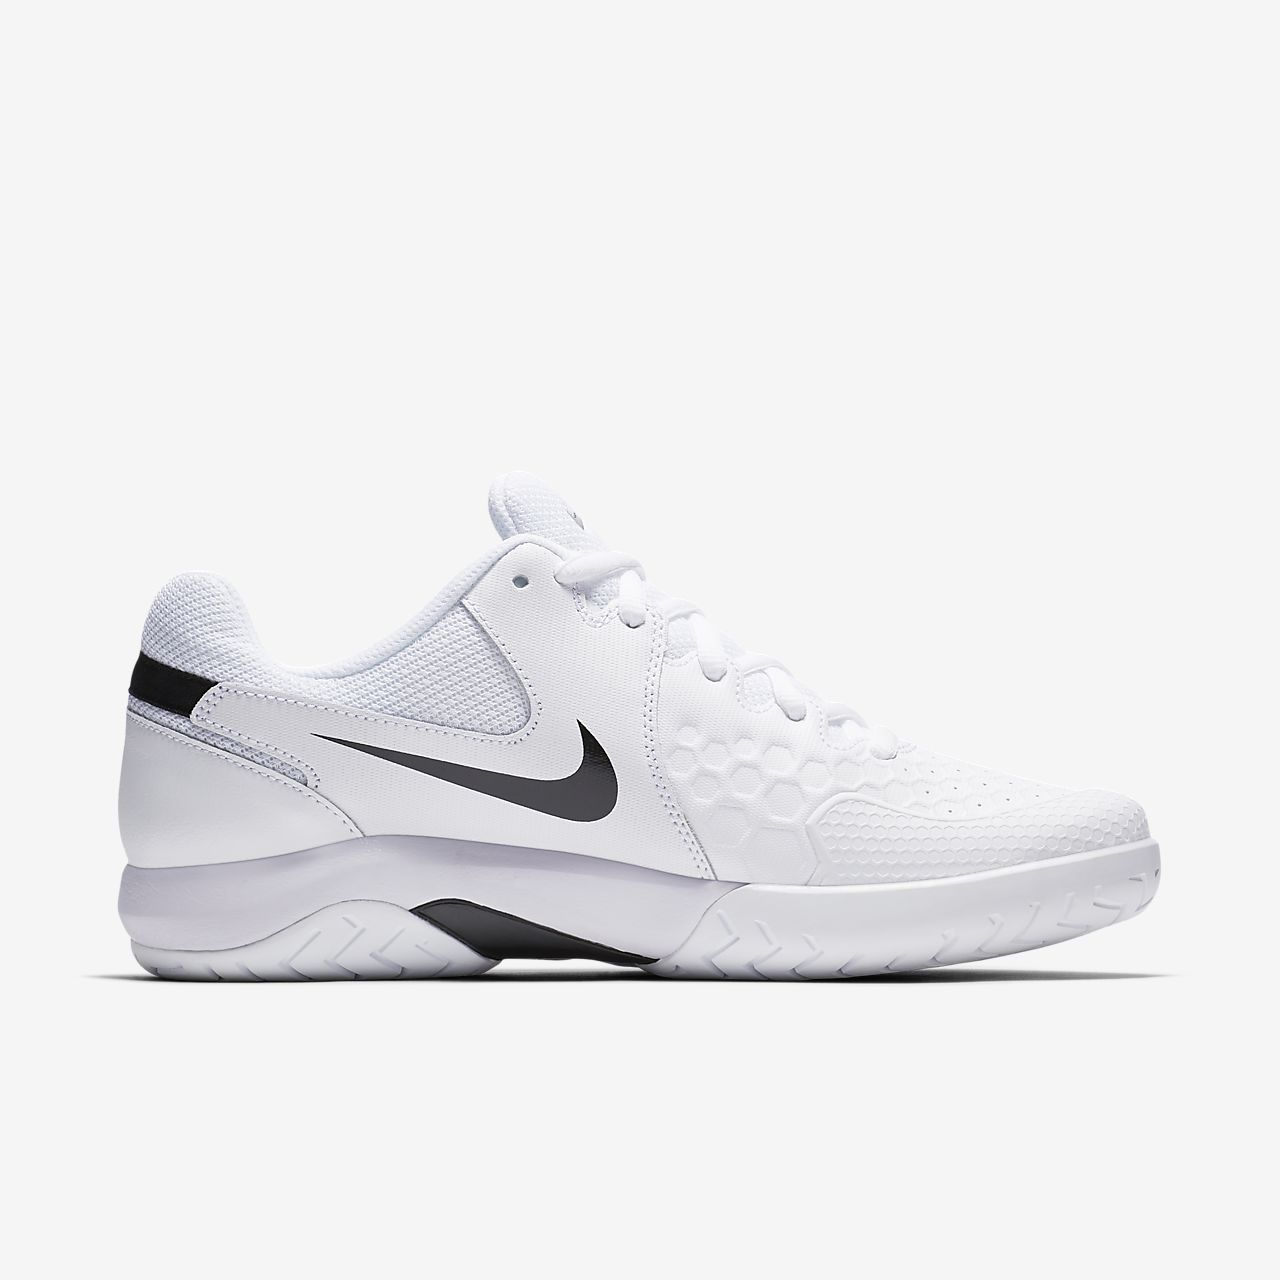 6be80231f nikecourt-air-zoom-resistance-hard-court-tennis-shoe-rJTGAGEP.jpg